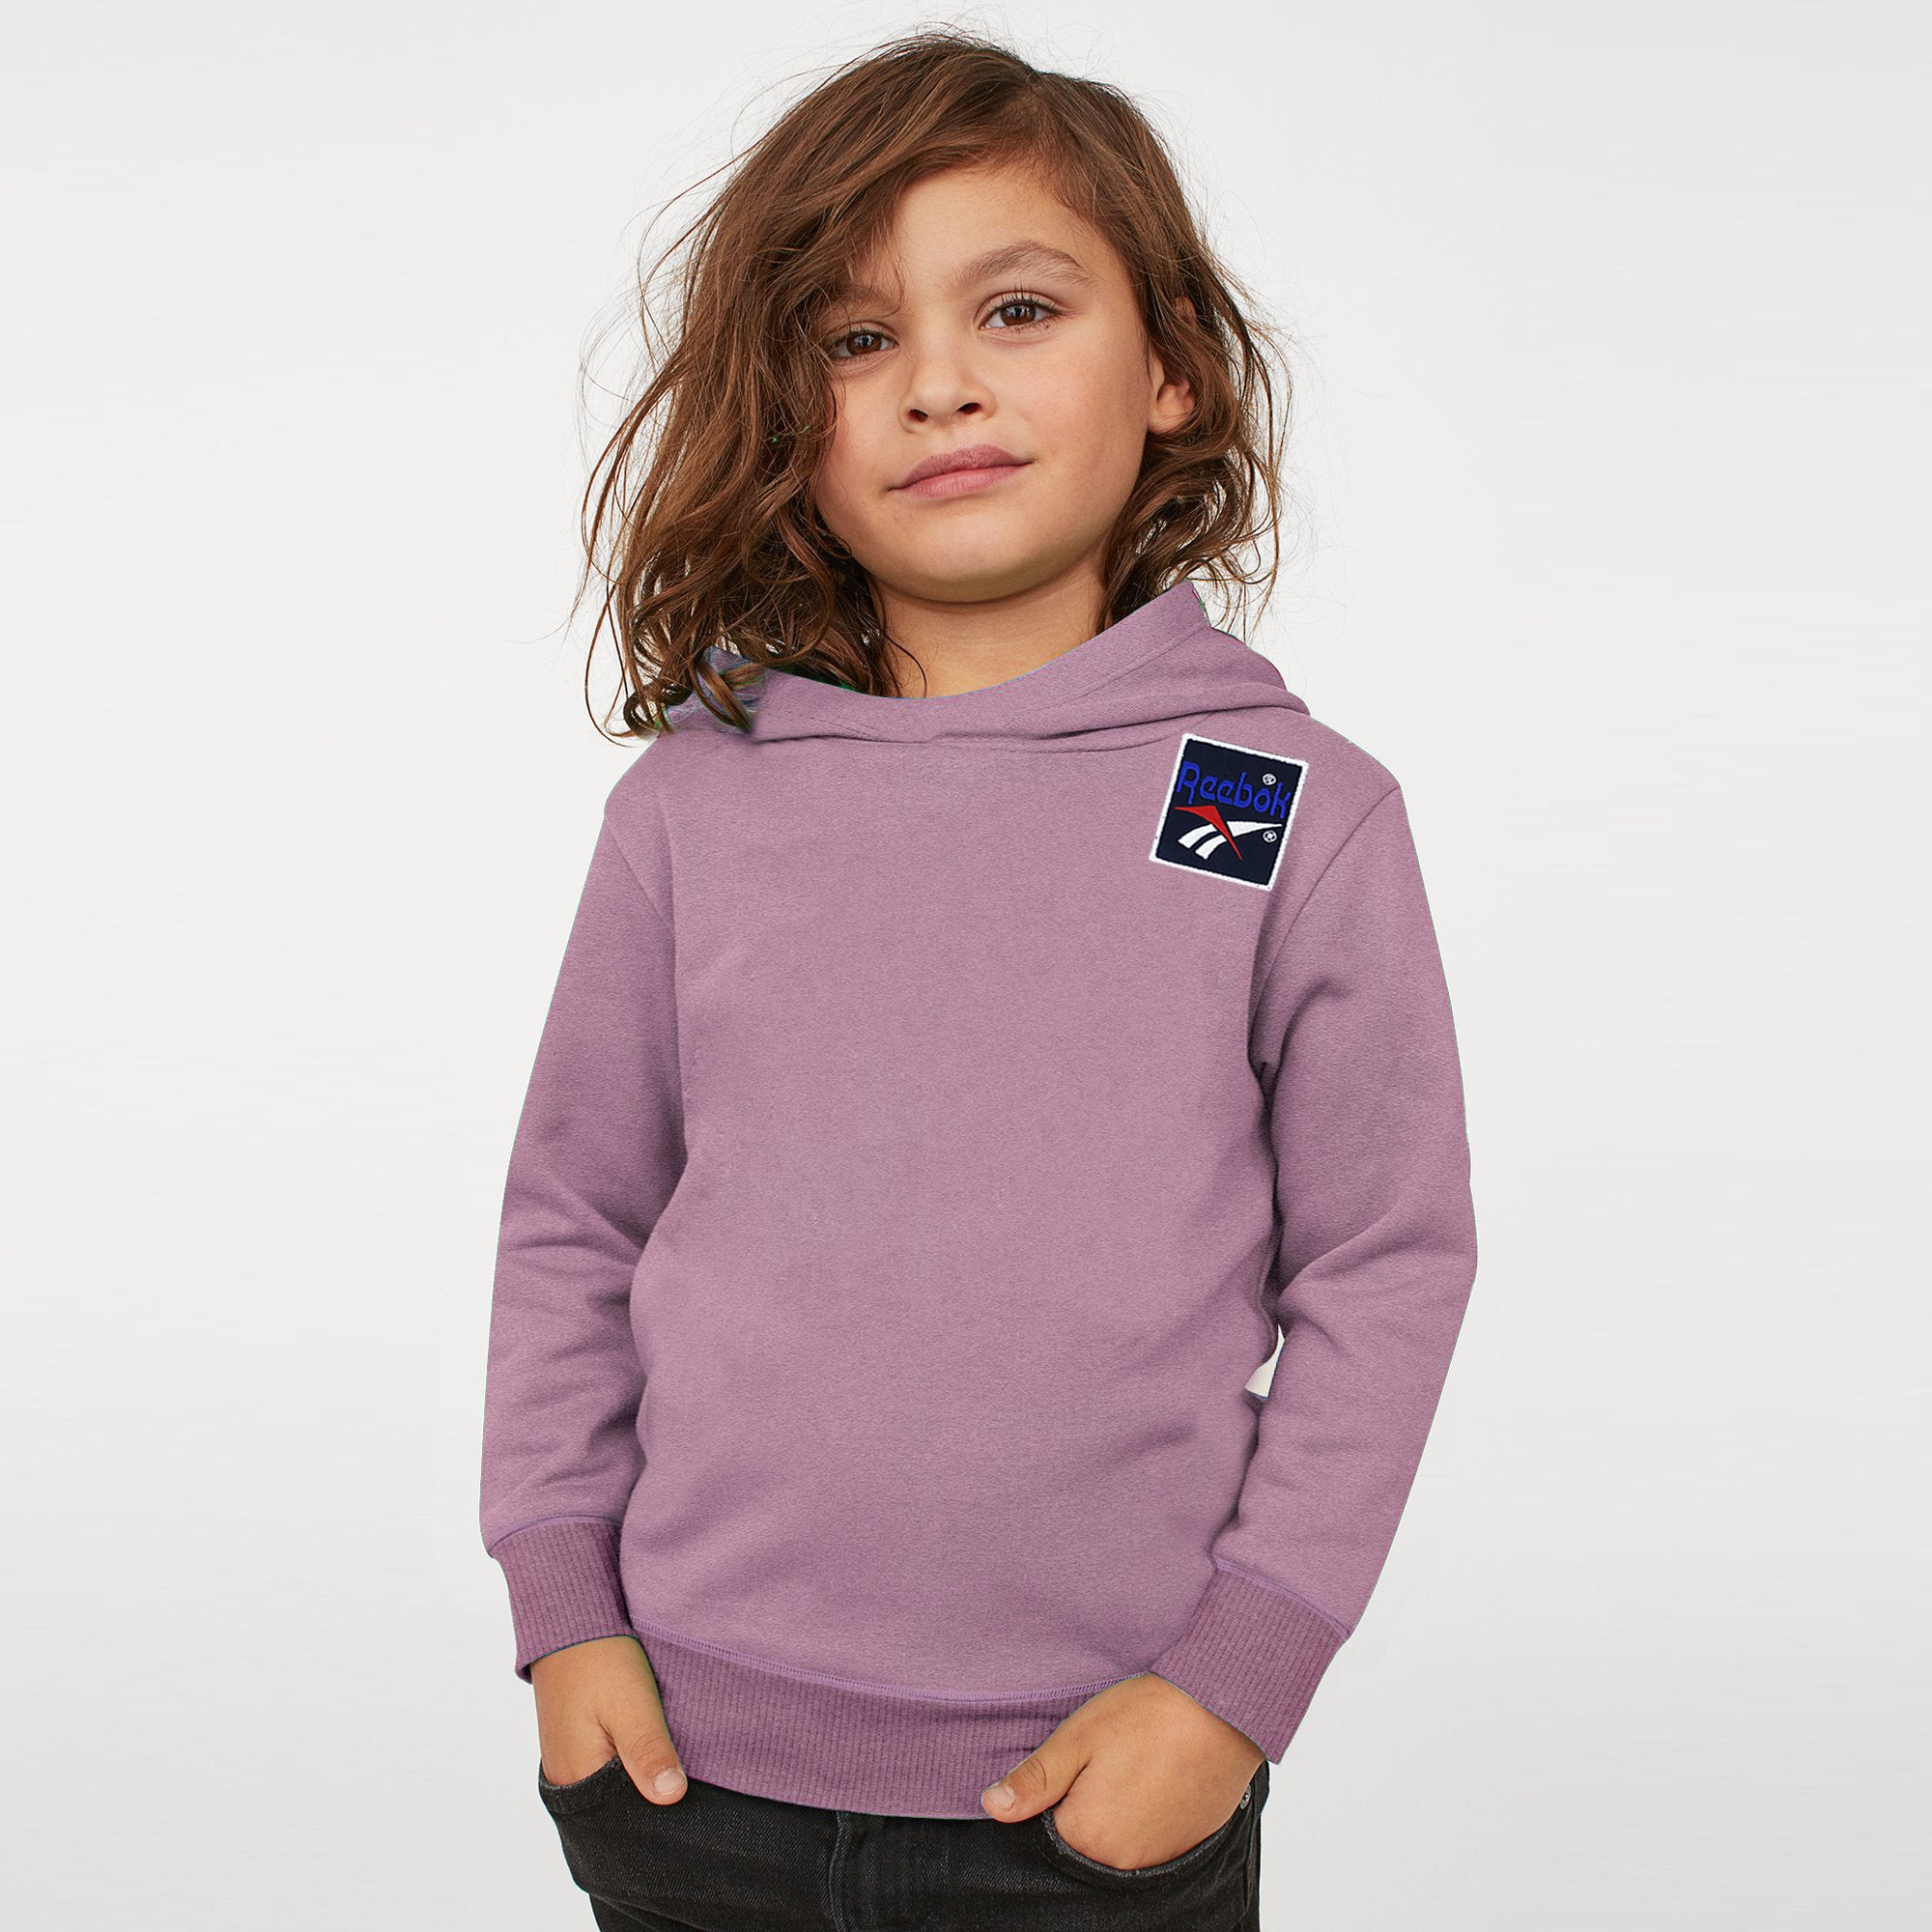 Reebok Terry Fleece Pullover Hoodie For Kids-Pink Melange-BE7893